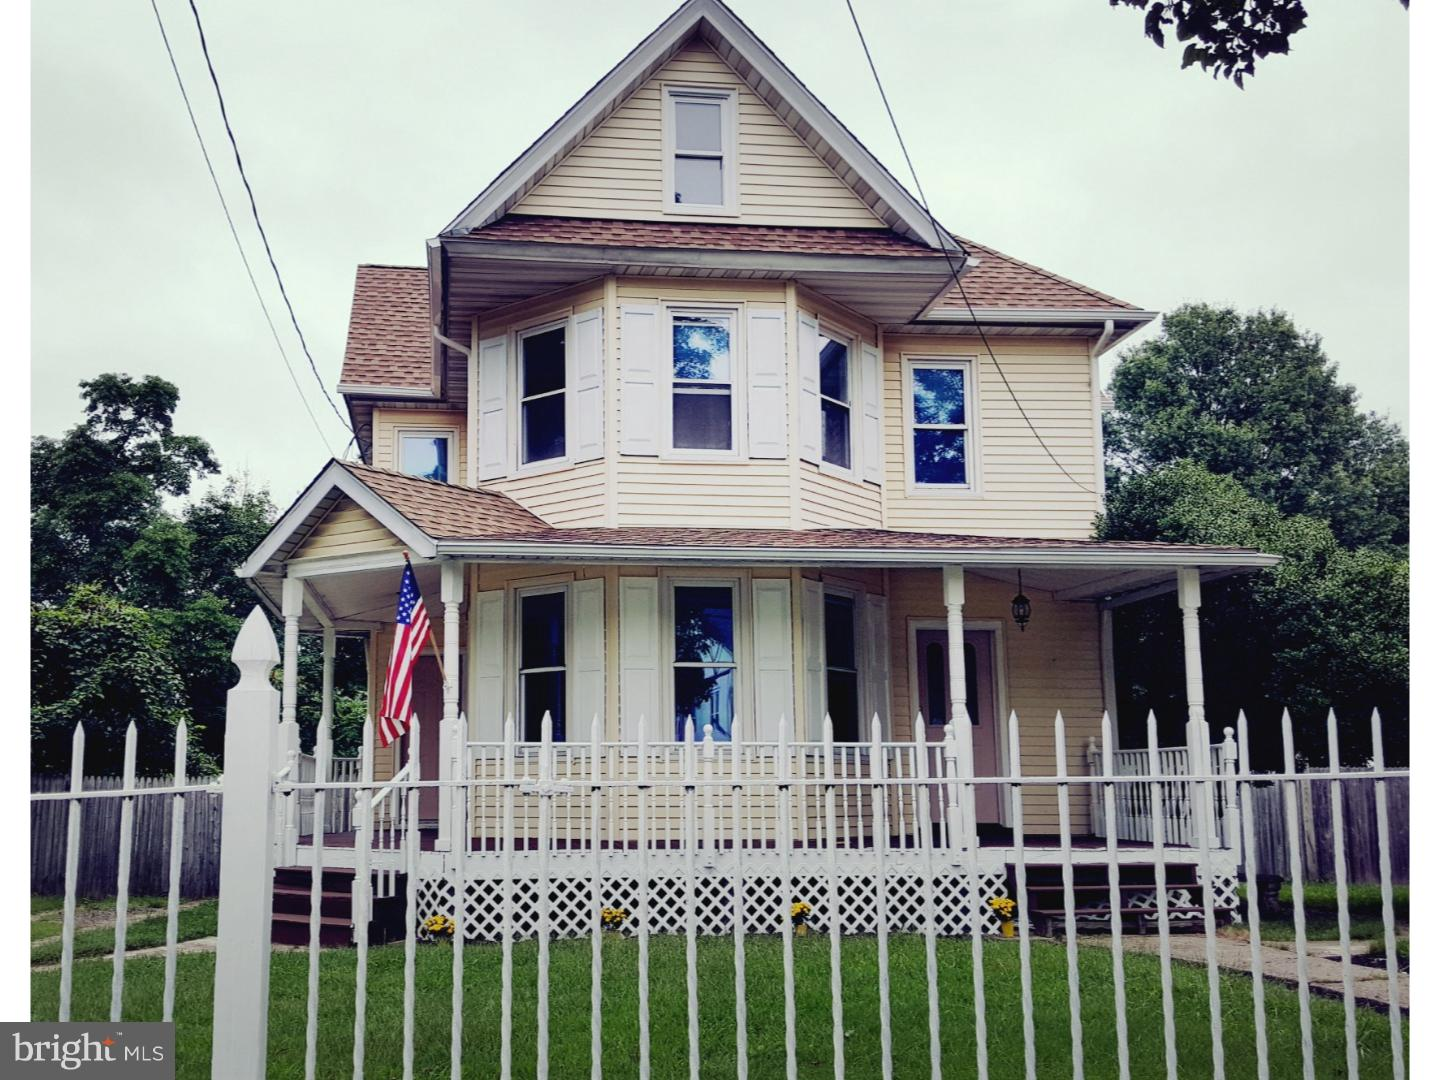 100 MAIN STREET, BRIDGEPORT, NJ 08014